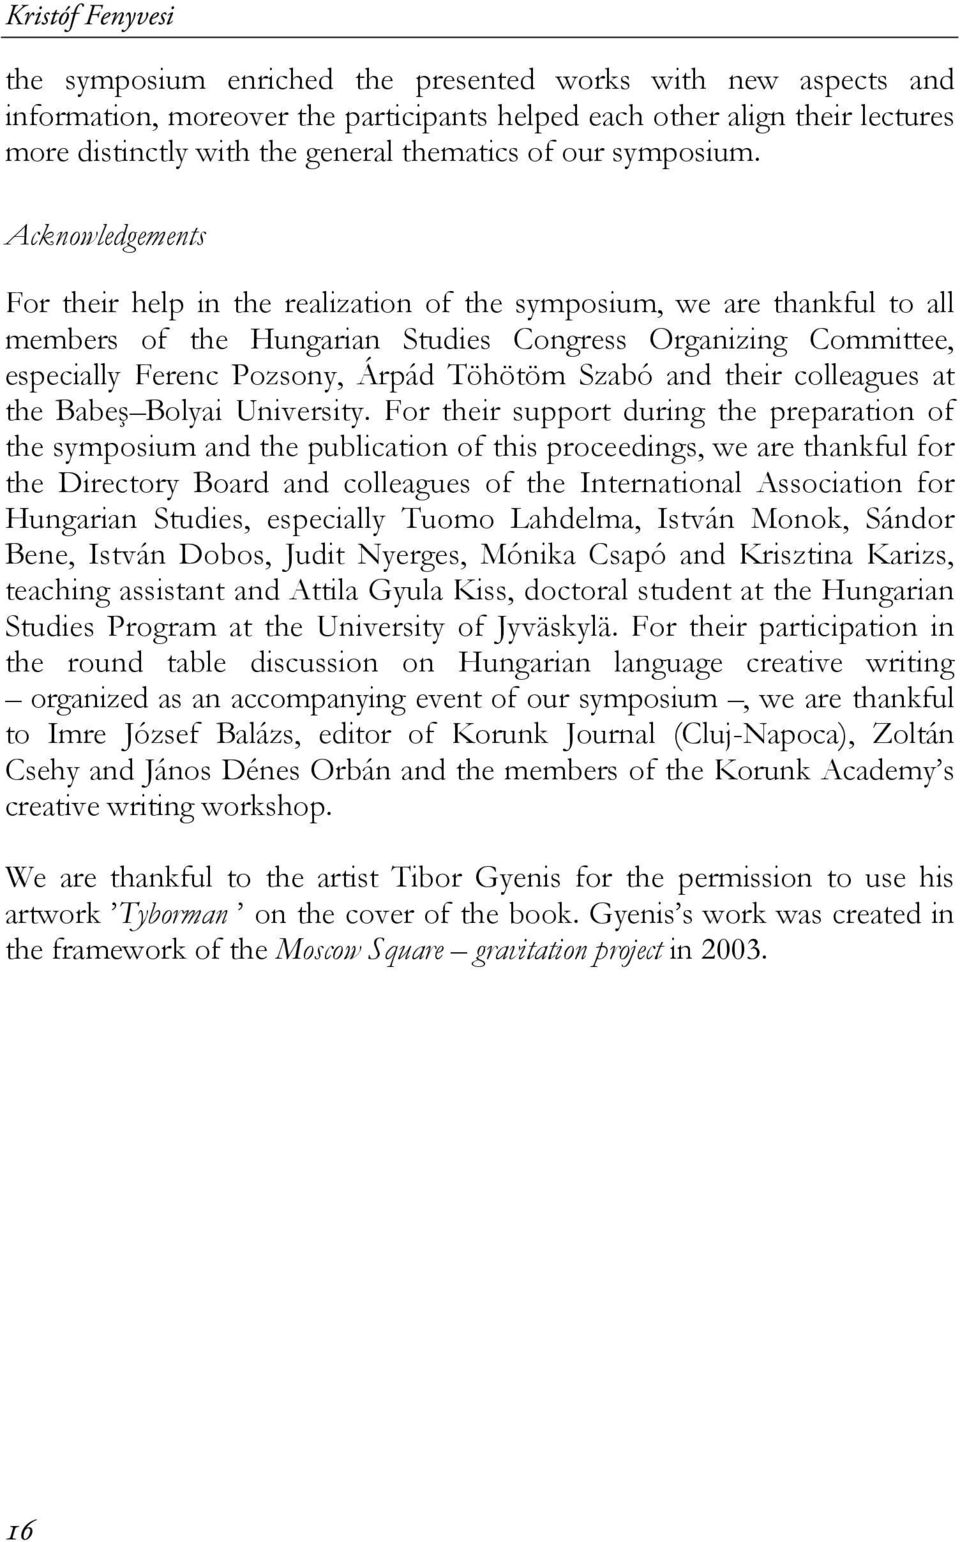 Acknowledgements For their help in the realization of the symposium, we are thankful to all members of the Hungarian Studies Congress Organizing Committee, especially Ferenc Pozsony, Árpád Töhötöm